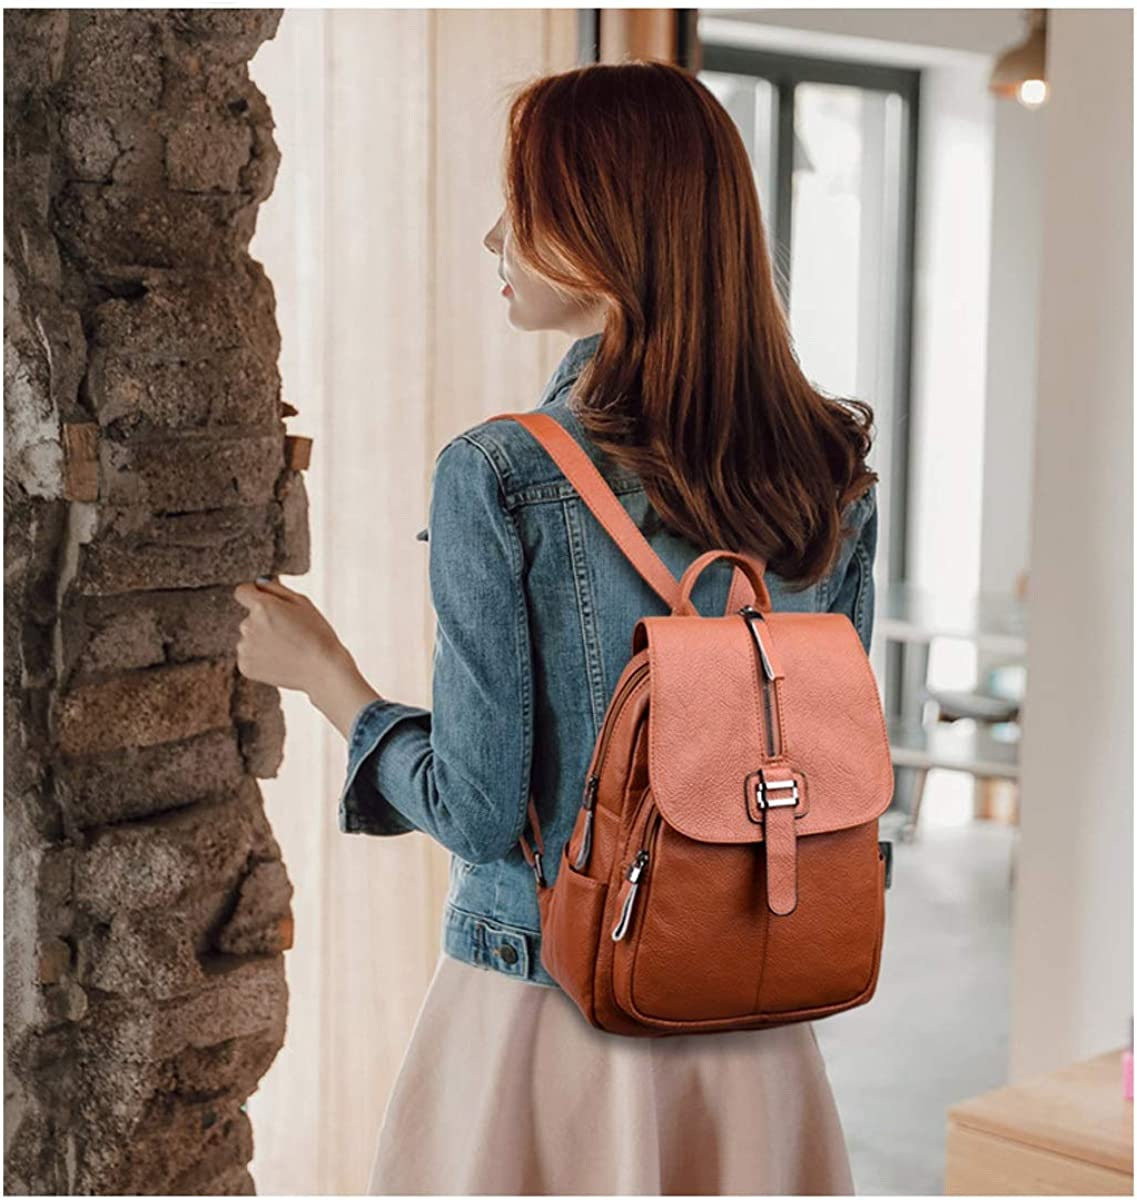 for Women /& Men PU Leather Simple and Practical ZHICHUANG Girls Multipurpose Backpack for Everyday Travel//Outdoor//Travel//School//Work//Fashion//Leisure Black//Brown//Red